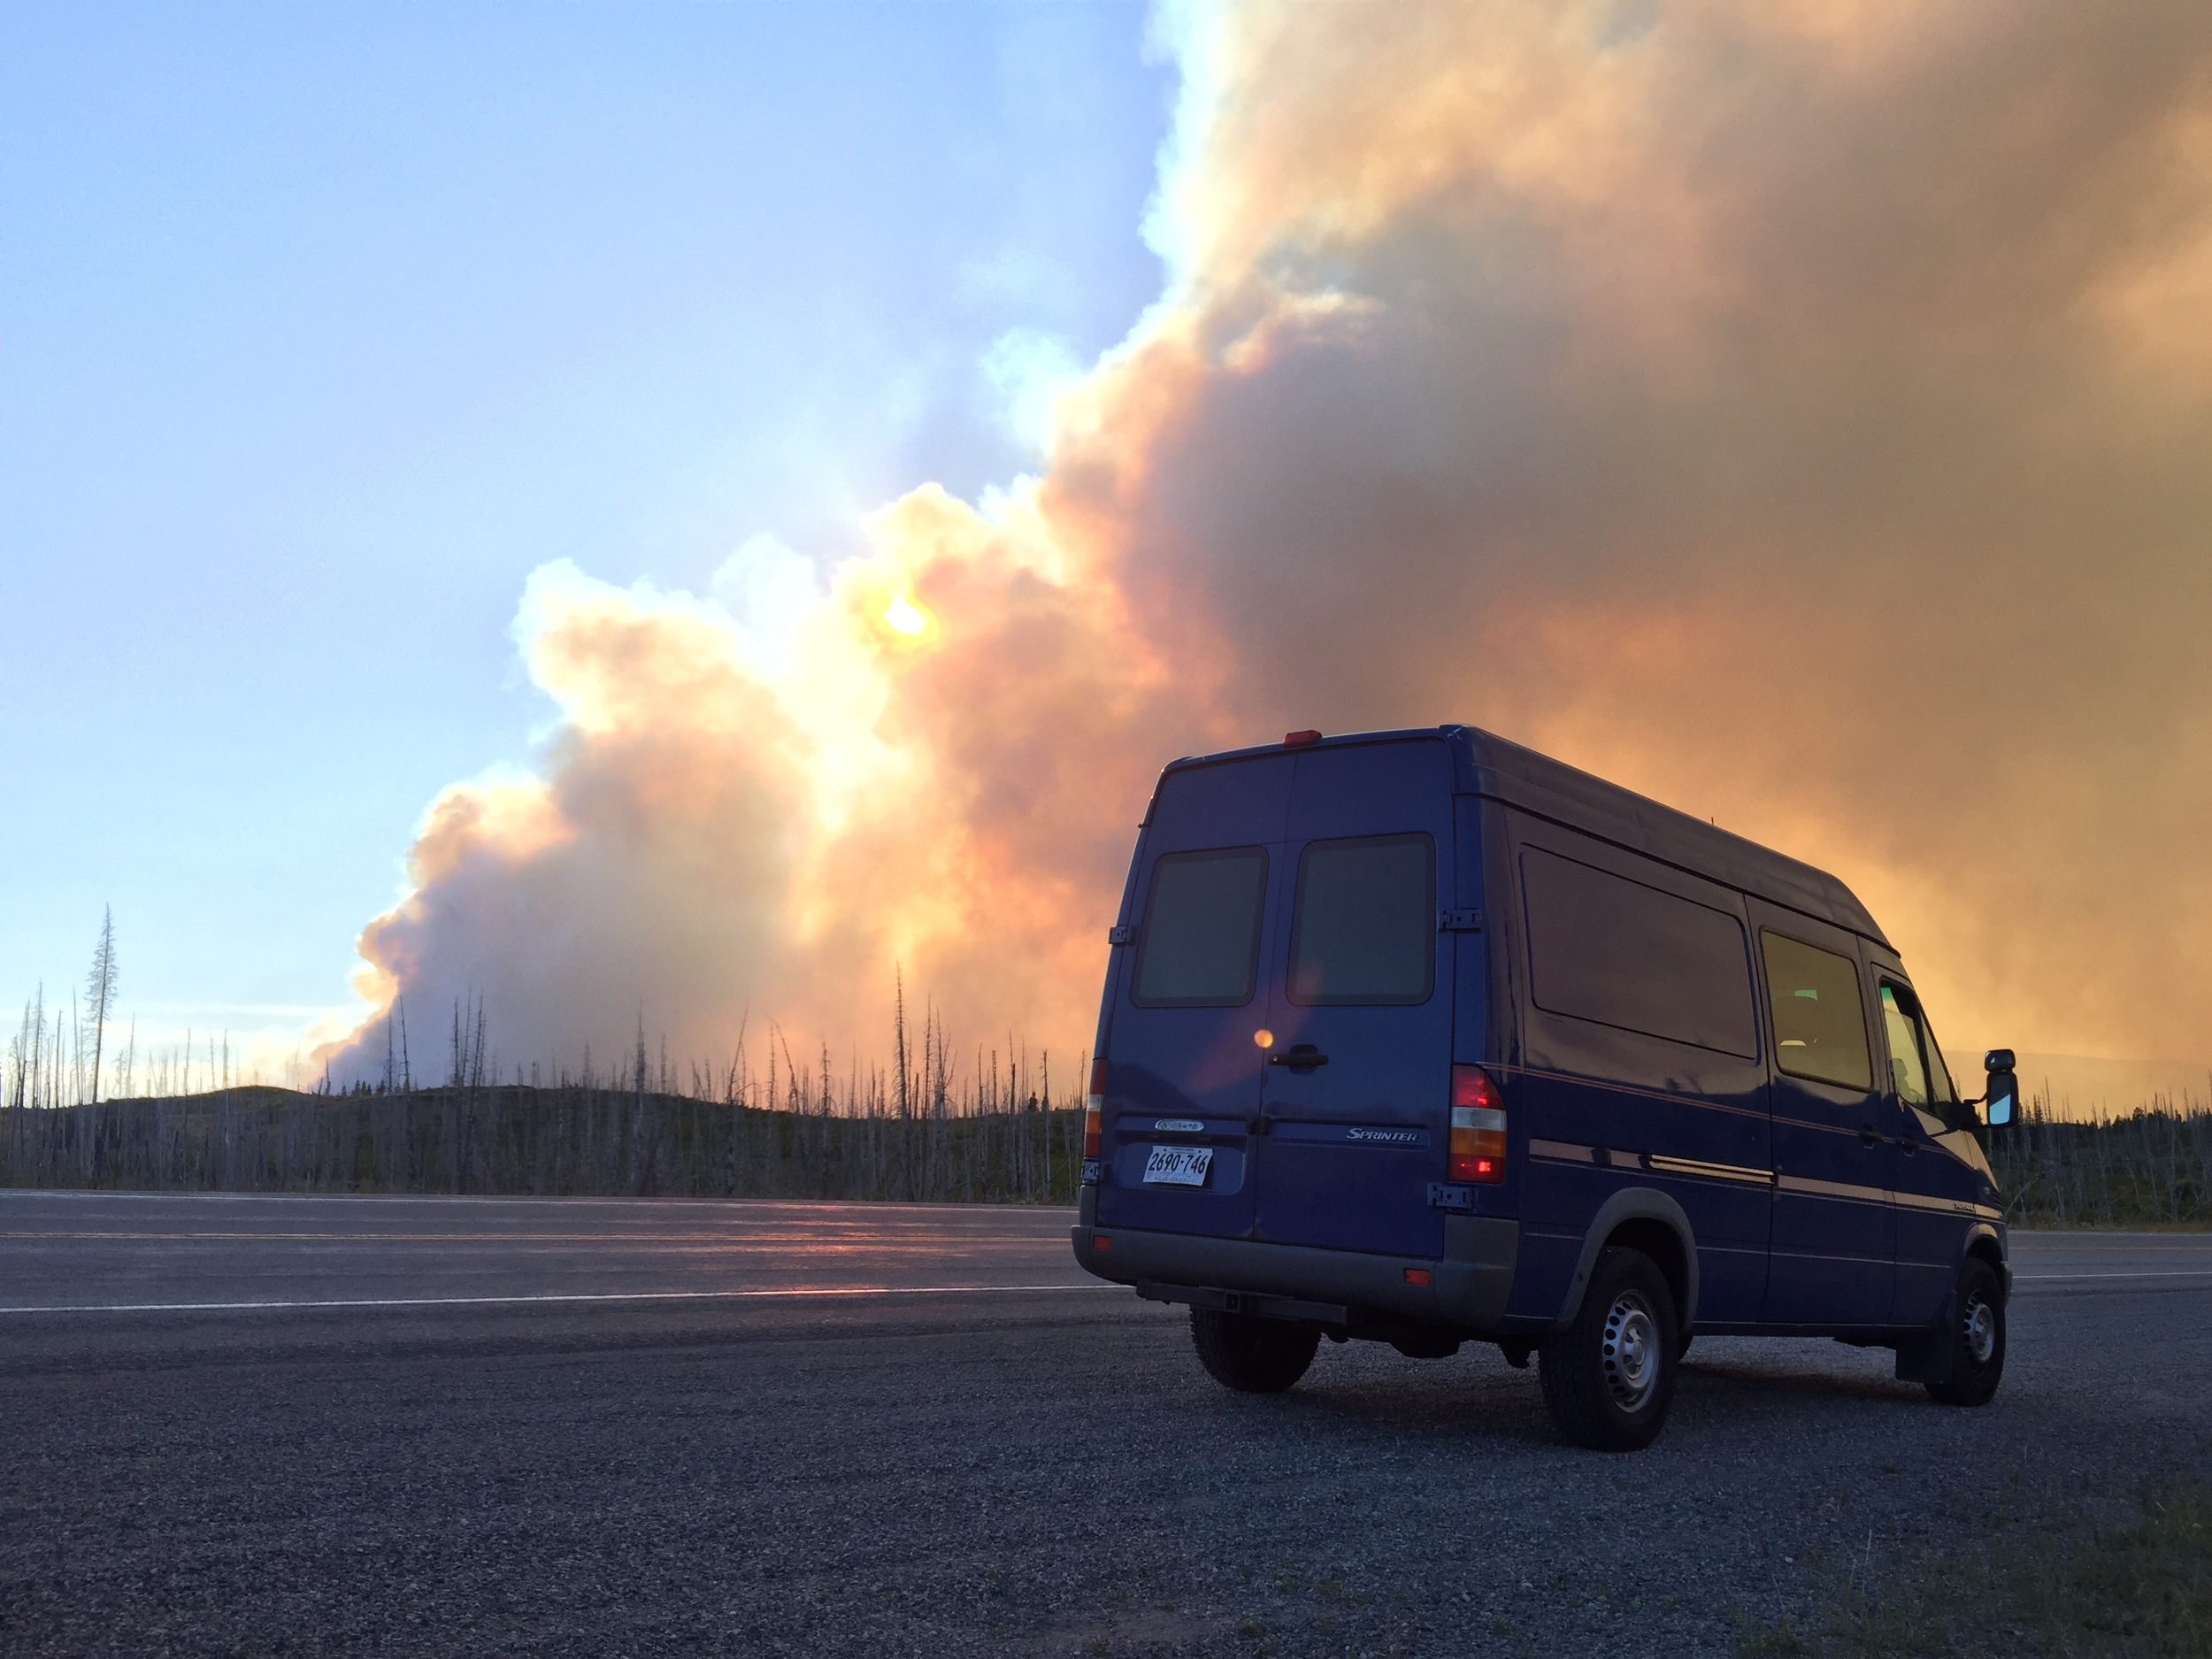 Approaching the wild fire raging at Glacier National Park